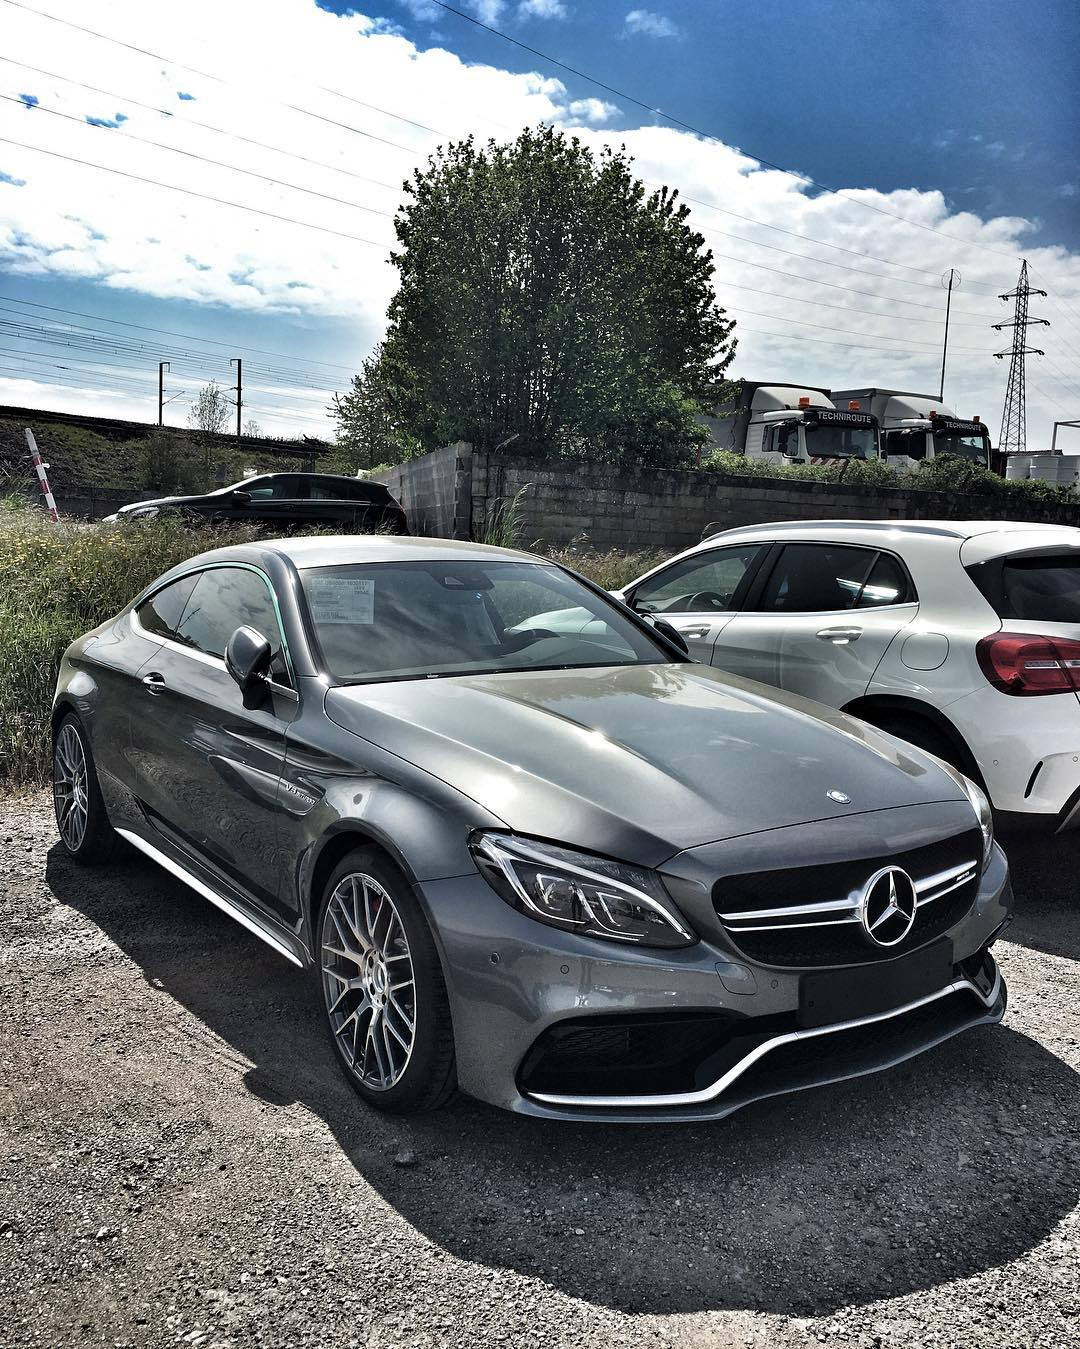 Mercedes-AMG C63S Coupe in Selenite Grey (PICS) - Page 17 ...